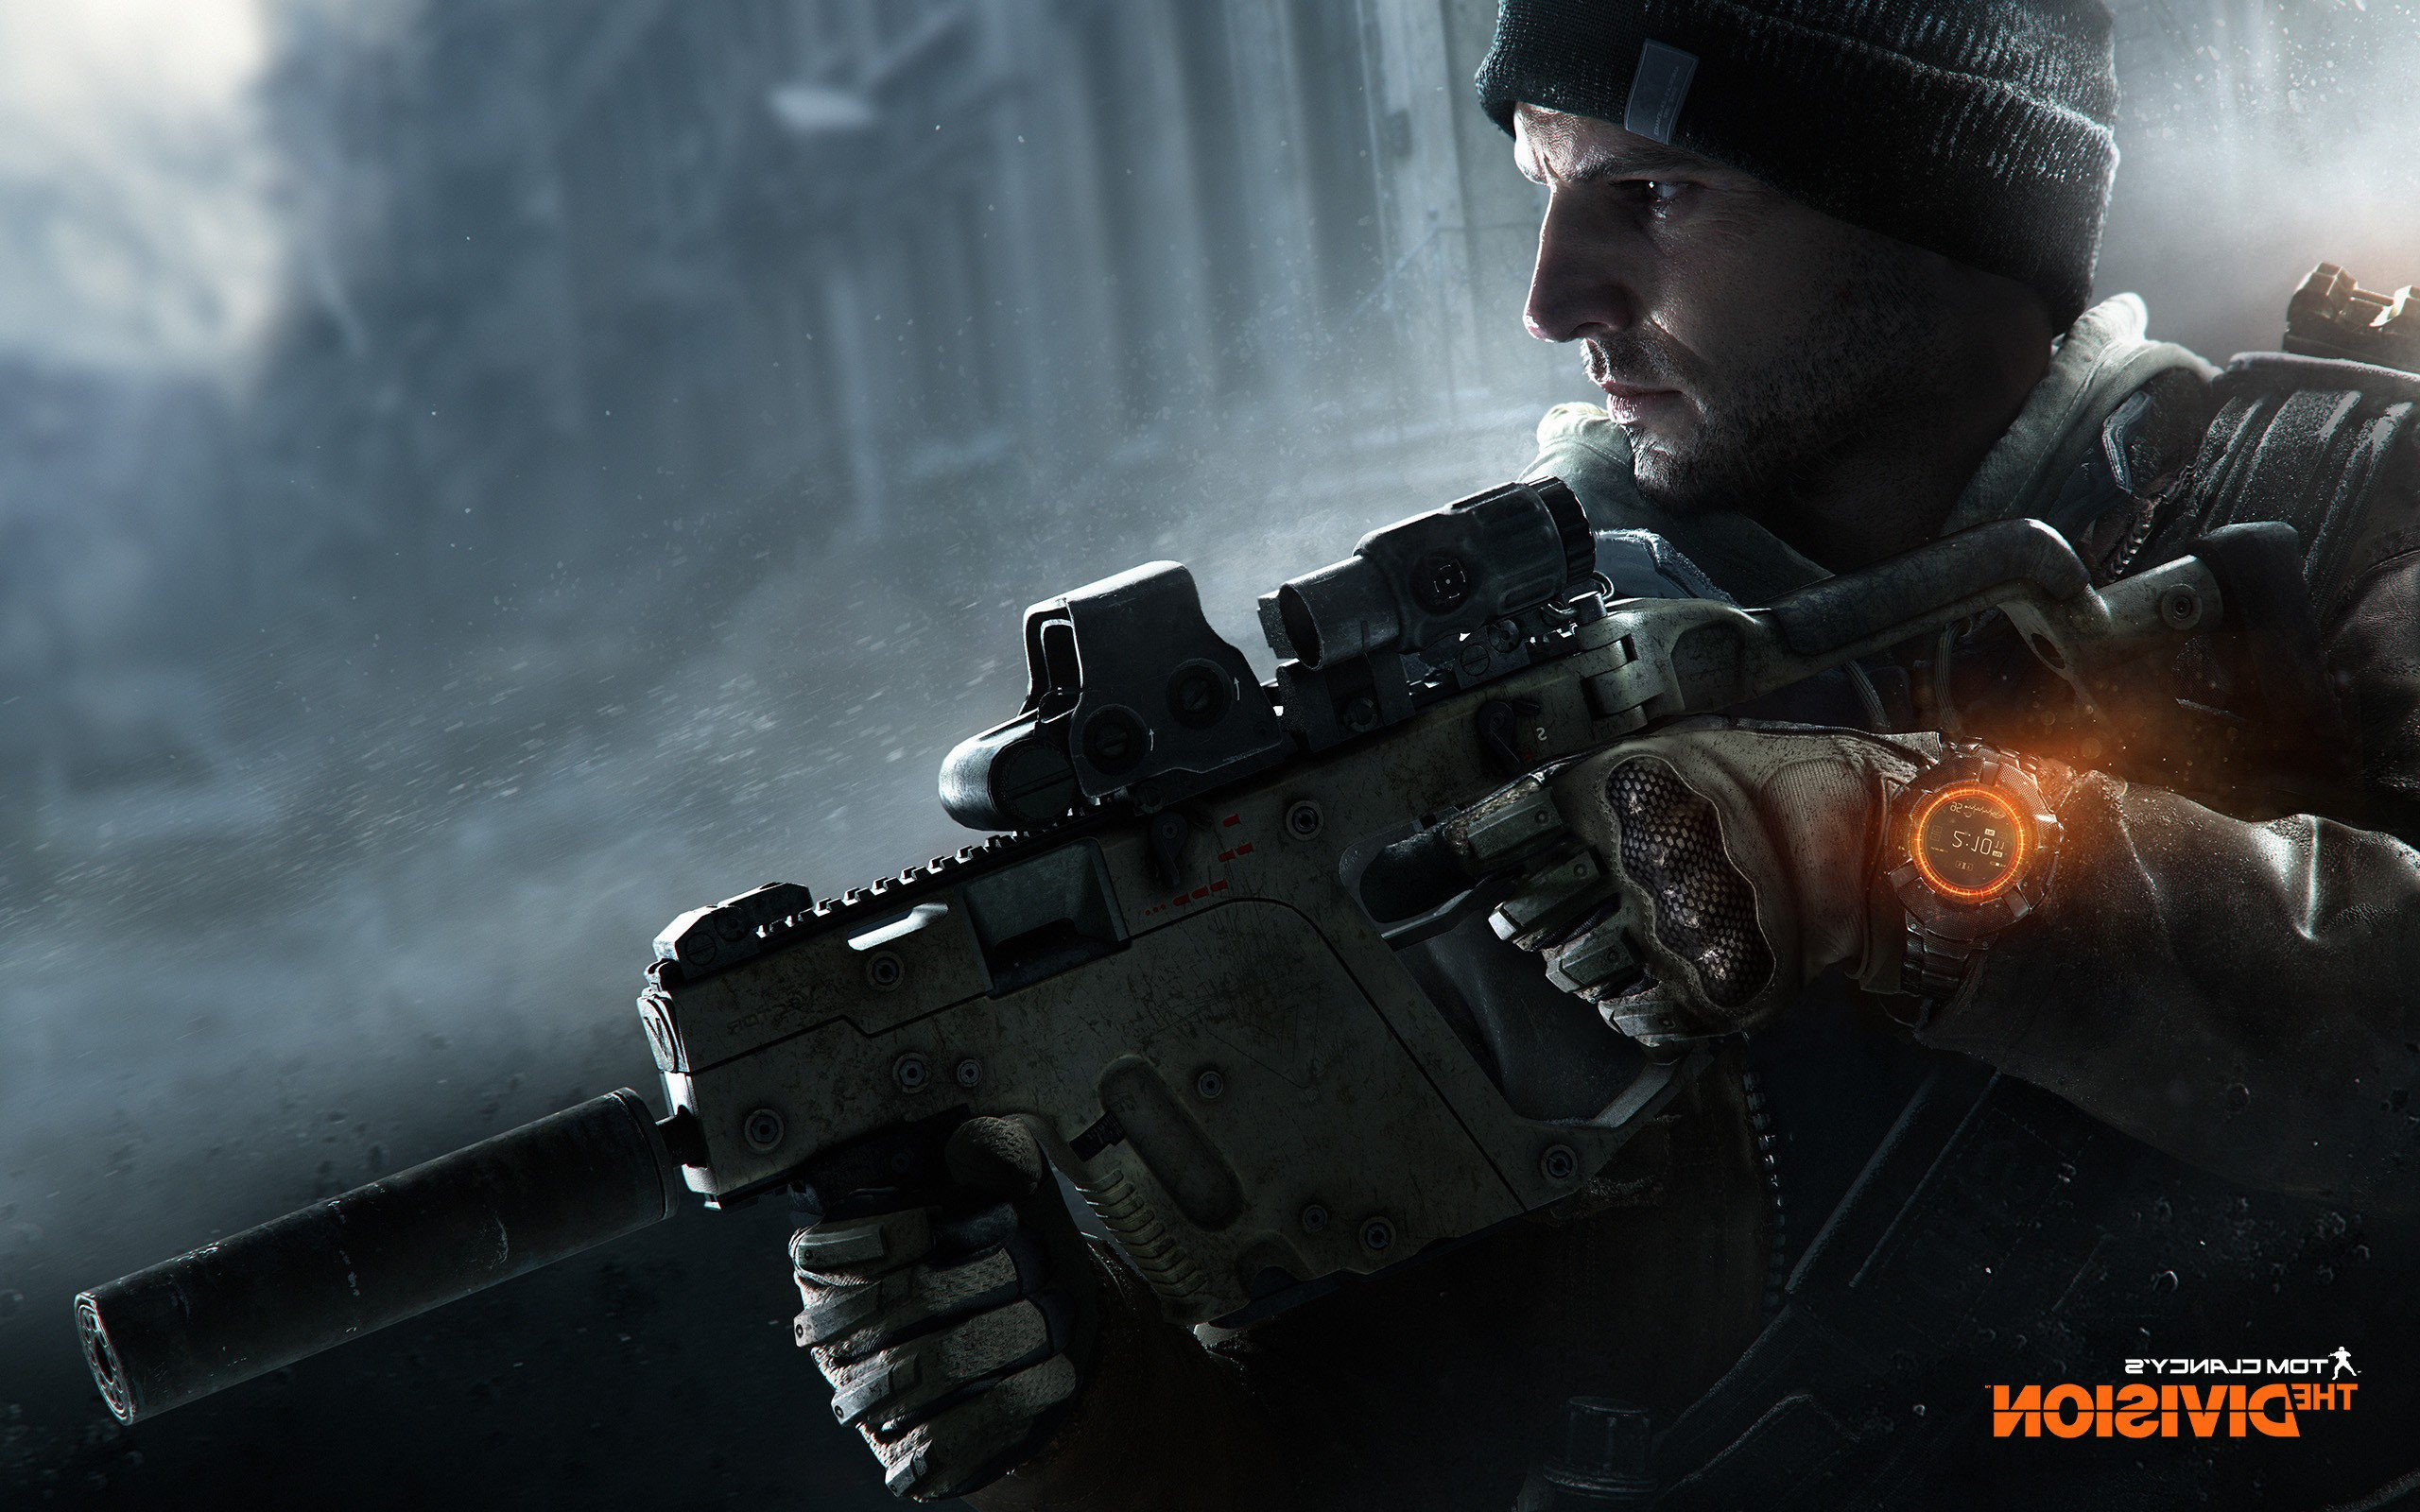 HD Tom Clancy's The Division Wallpapers